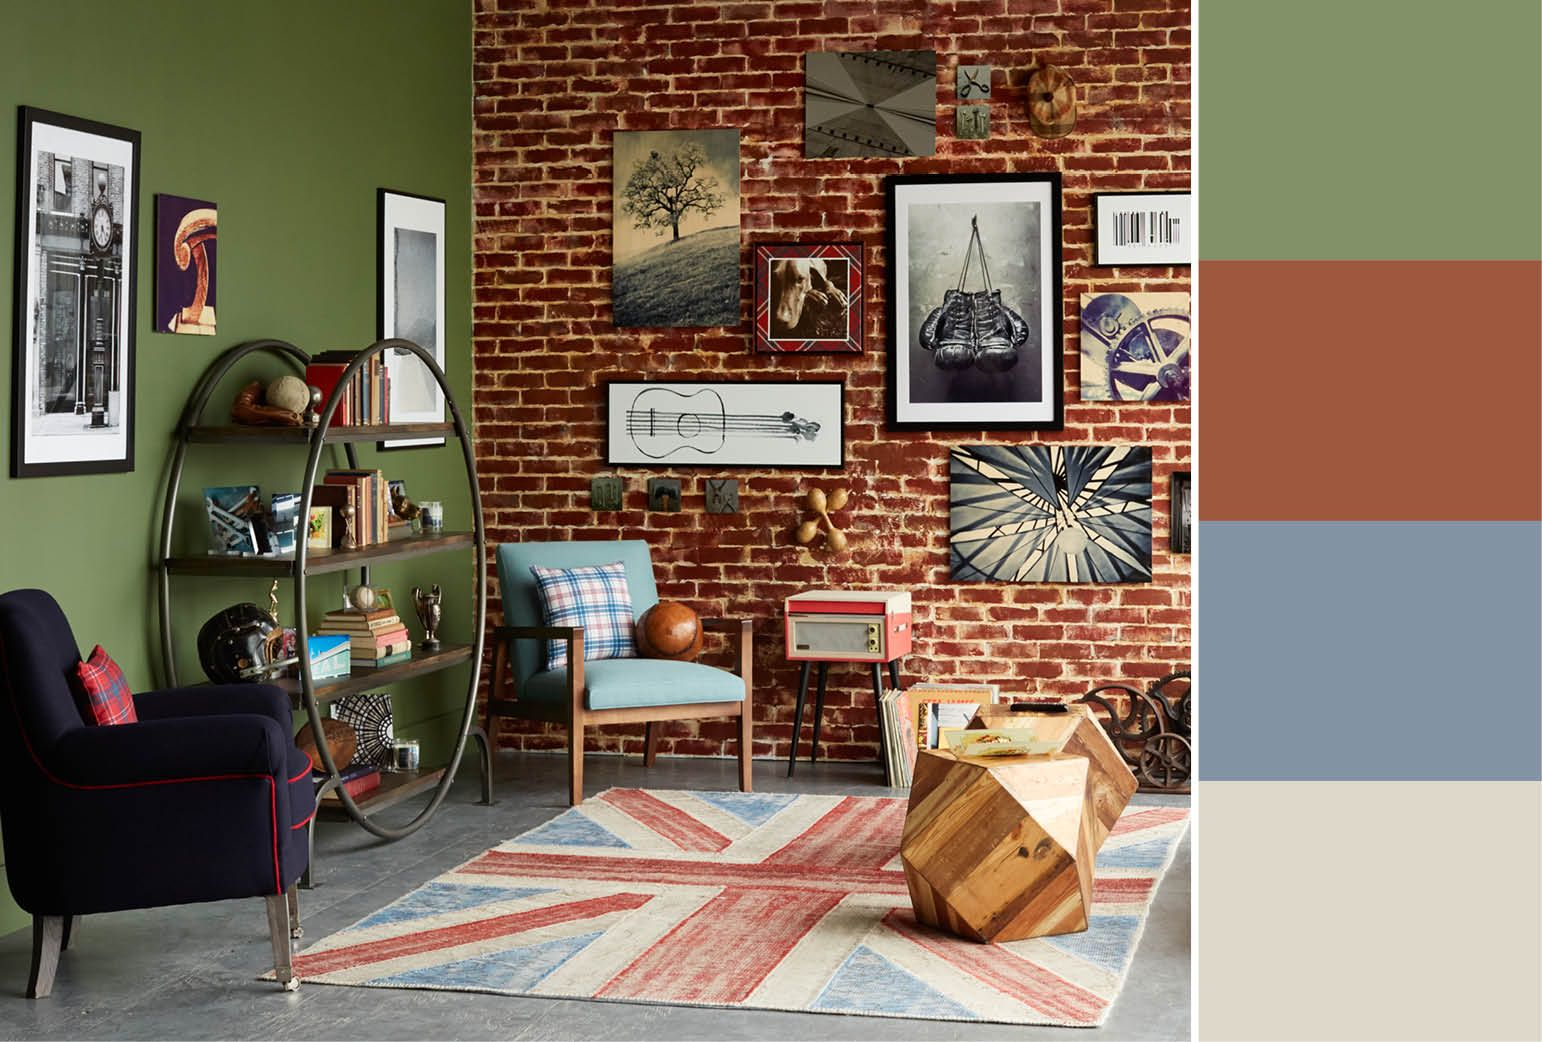 30 Accent Wall Color Combinations To Match Any Style